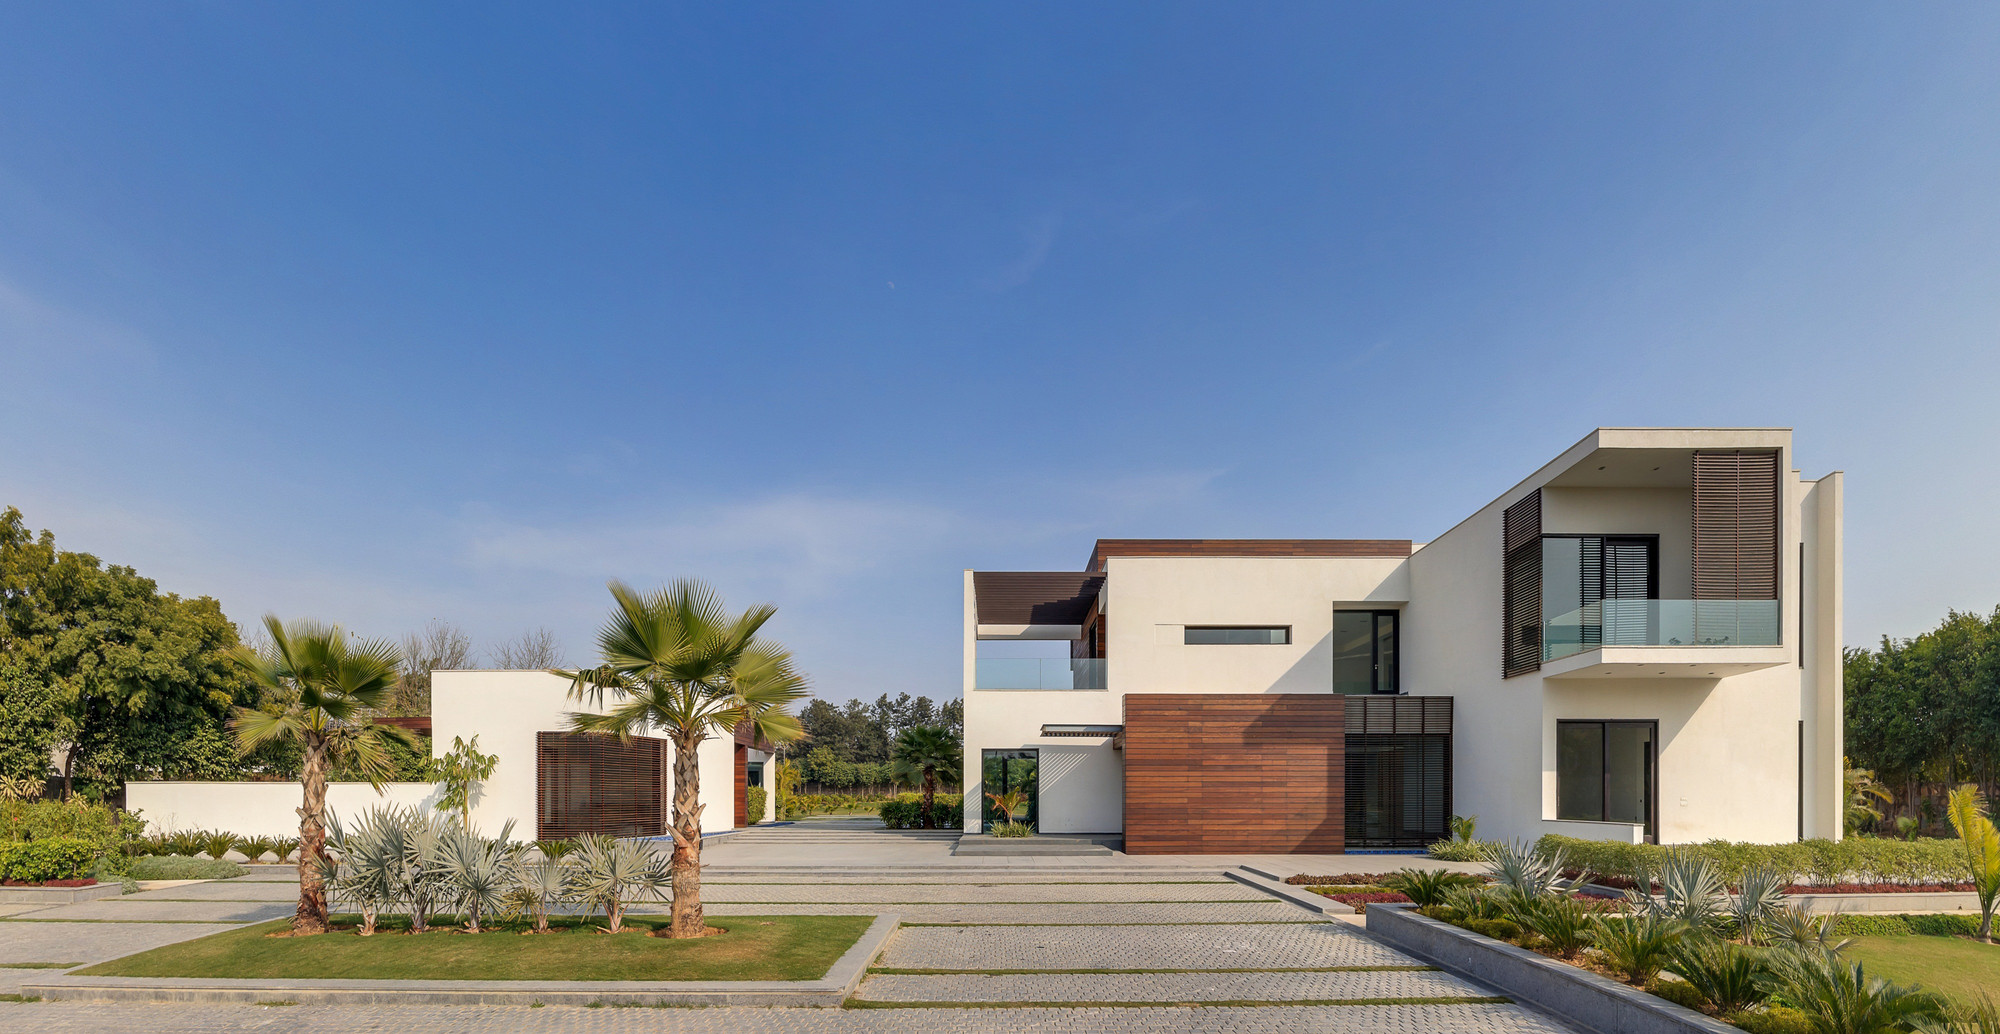 F3 farmhouse dada partners archdaily for Modern house designs and floor plans in india